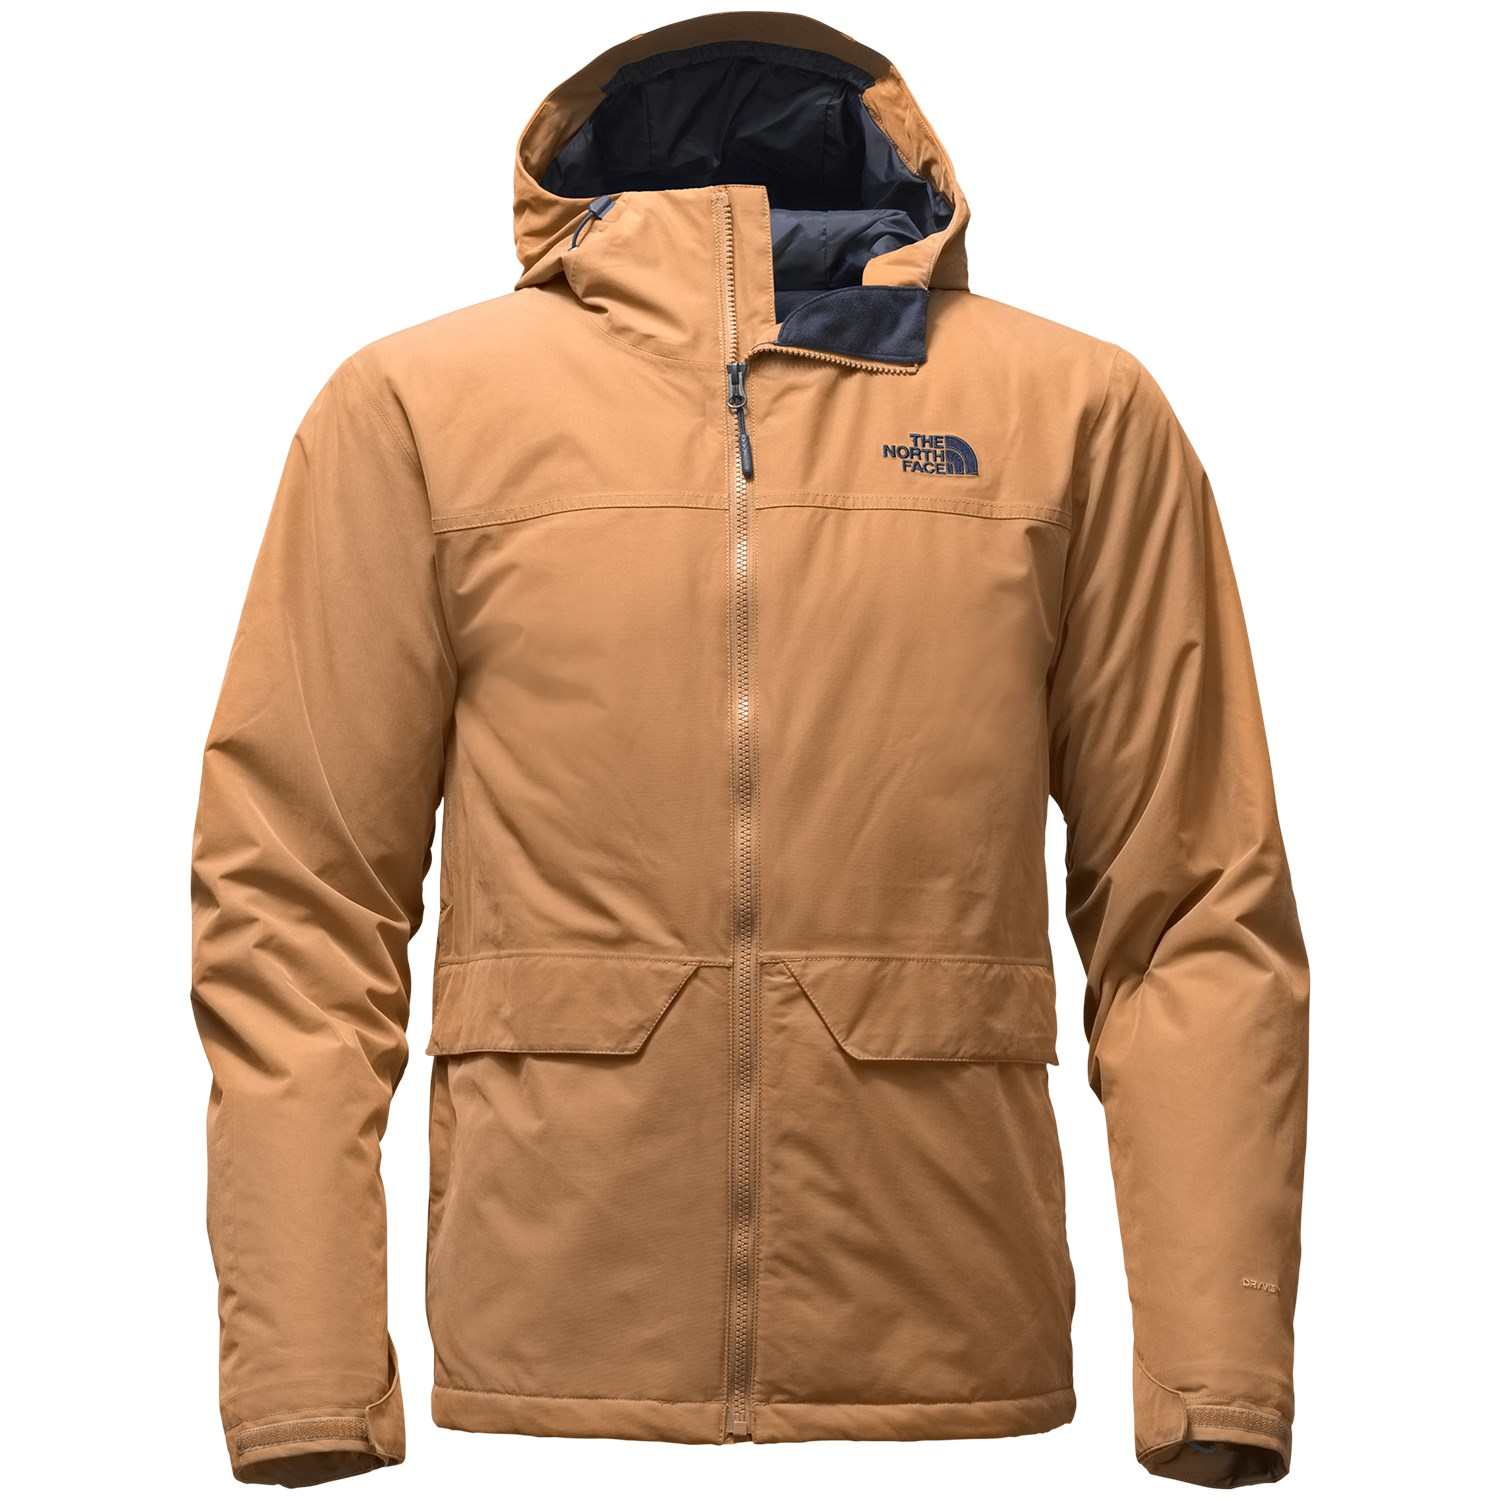 98a21c190b27 ... order the north face canyonlands triclimate jacket evo a8821 d4ba9 ...